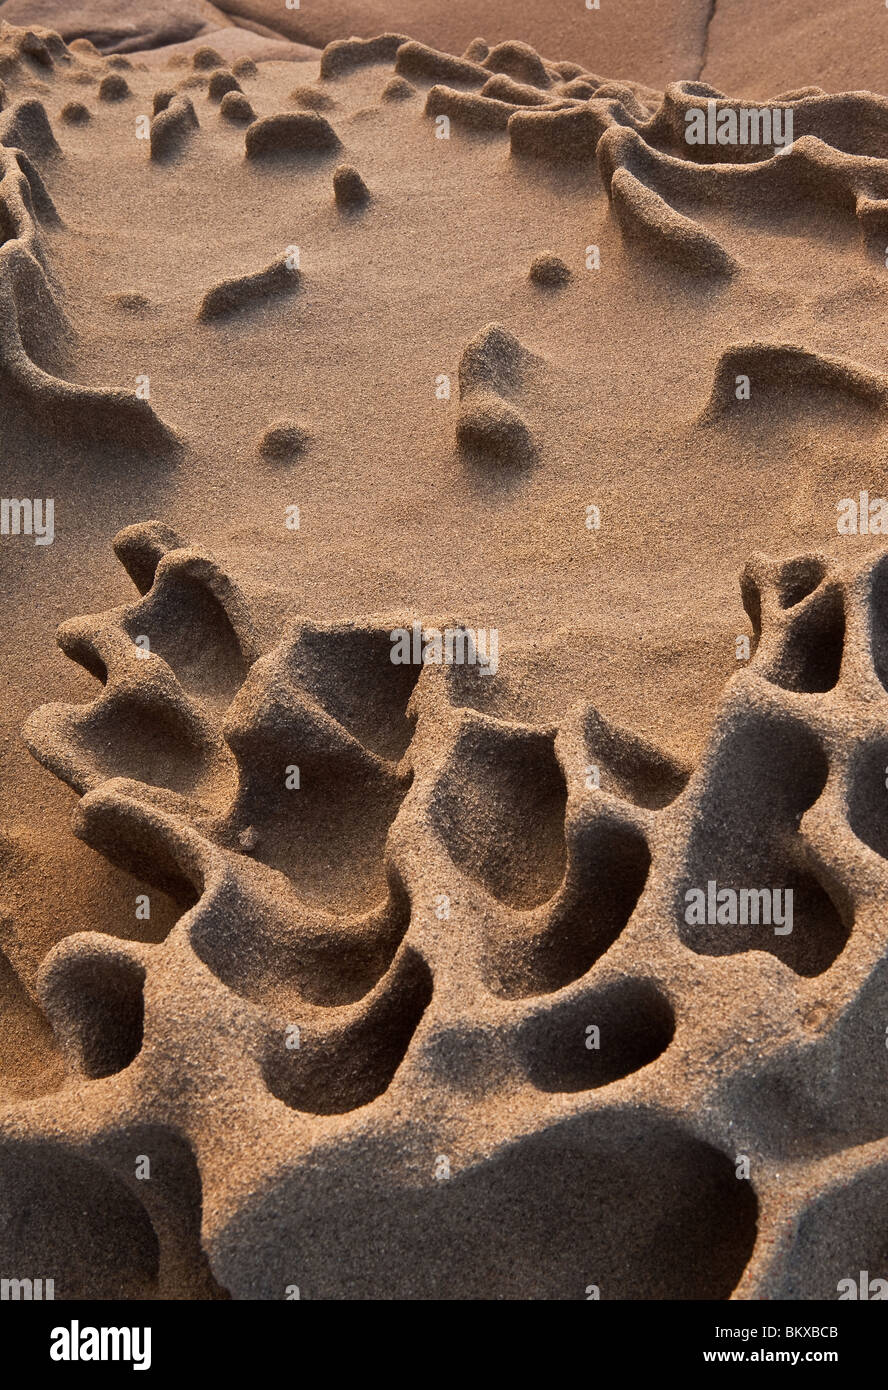 The shapes and structures of Sandstone cliffs on the Californian coast 30 miles north of Santa Cruz USA - Stock Image